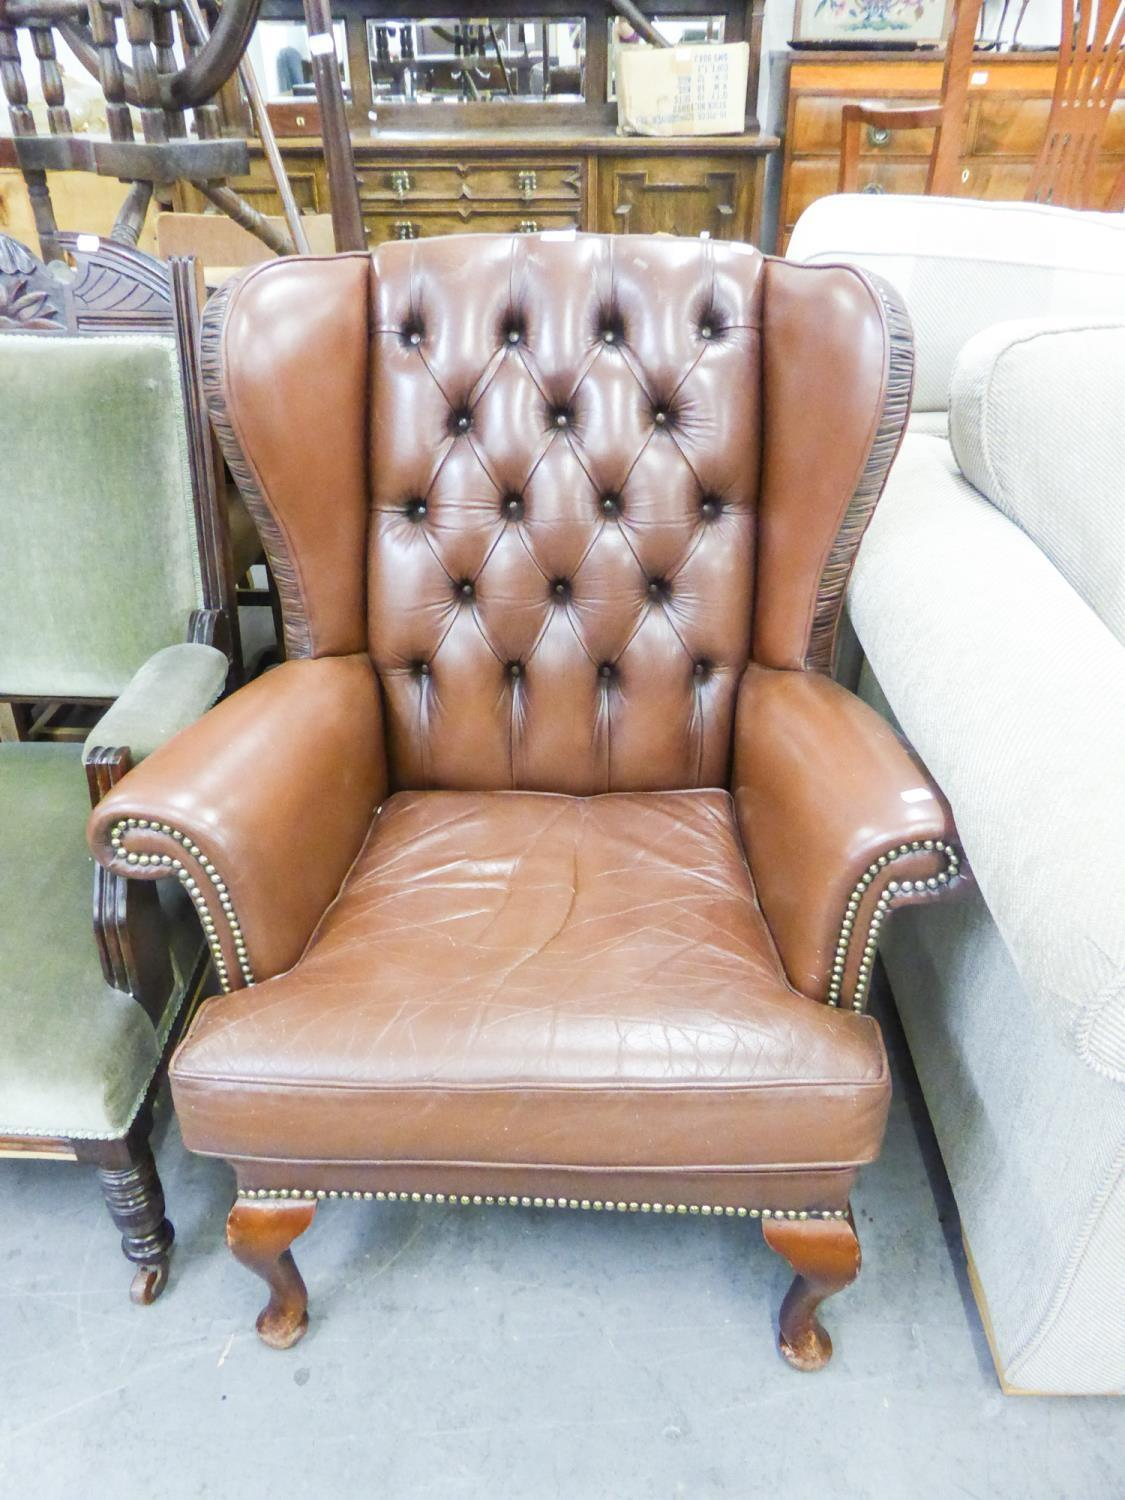 Lot 62 - A REPRODUCTION FIRESIDE ARMCHAIR, WITH BROWN HIDE UPHOLSTERY AND BUTTON BACK, A REPRODUCTION